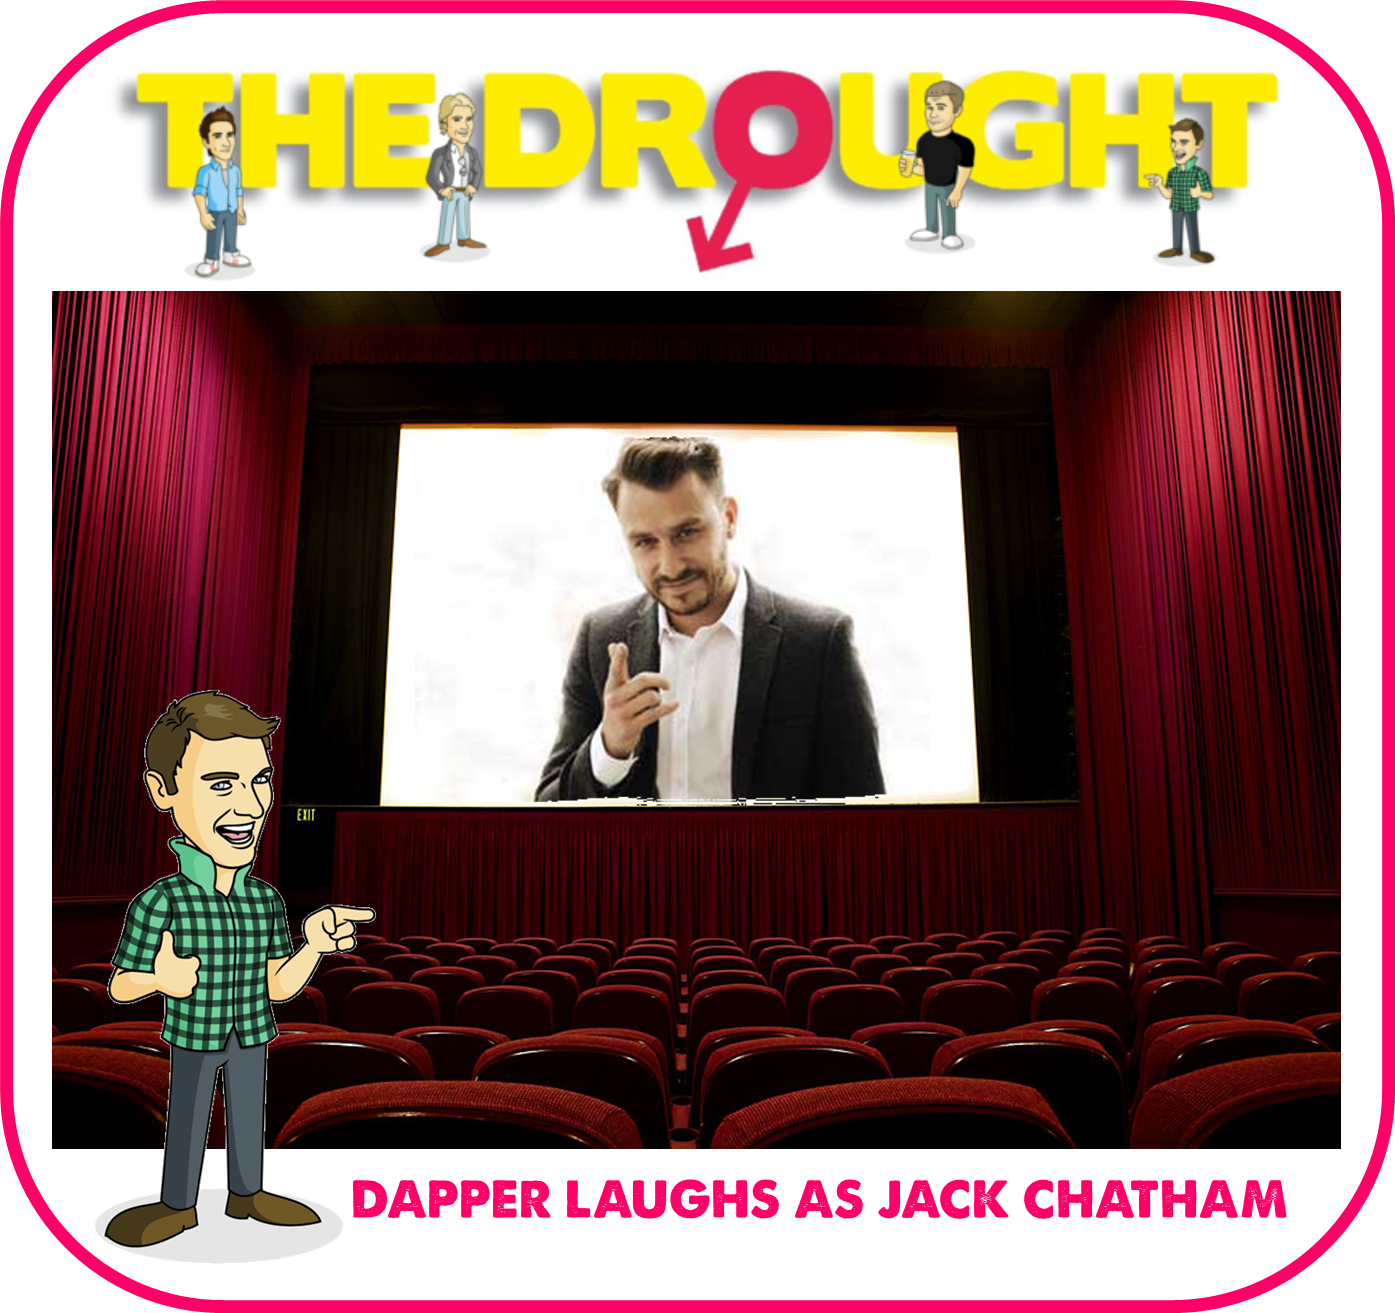 Dapper Laughs, Daniel O'Reilly, Jack Chatham, Comedian, Vine, Vide video clips, The Drought, movie, lad lit, funny book, comedy novel, funny book about relationships,